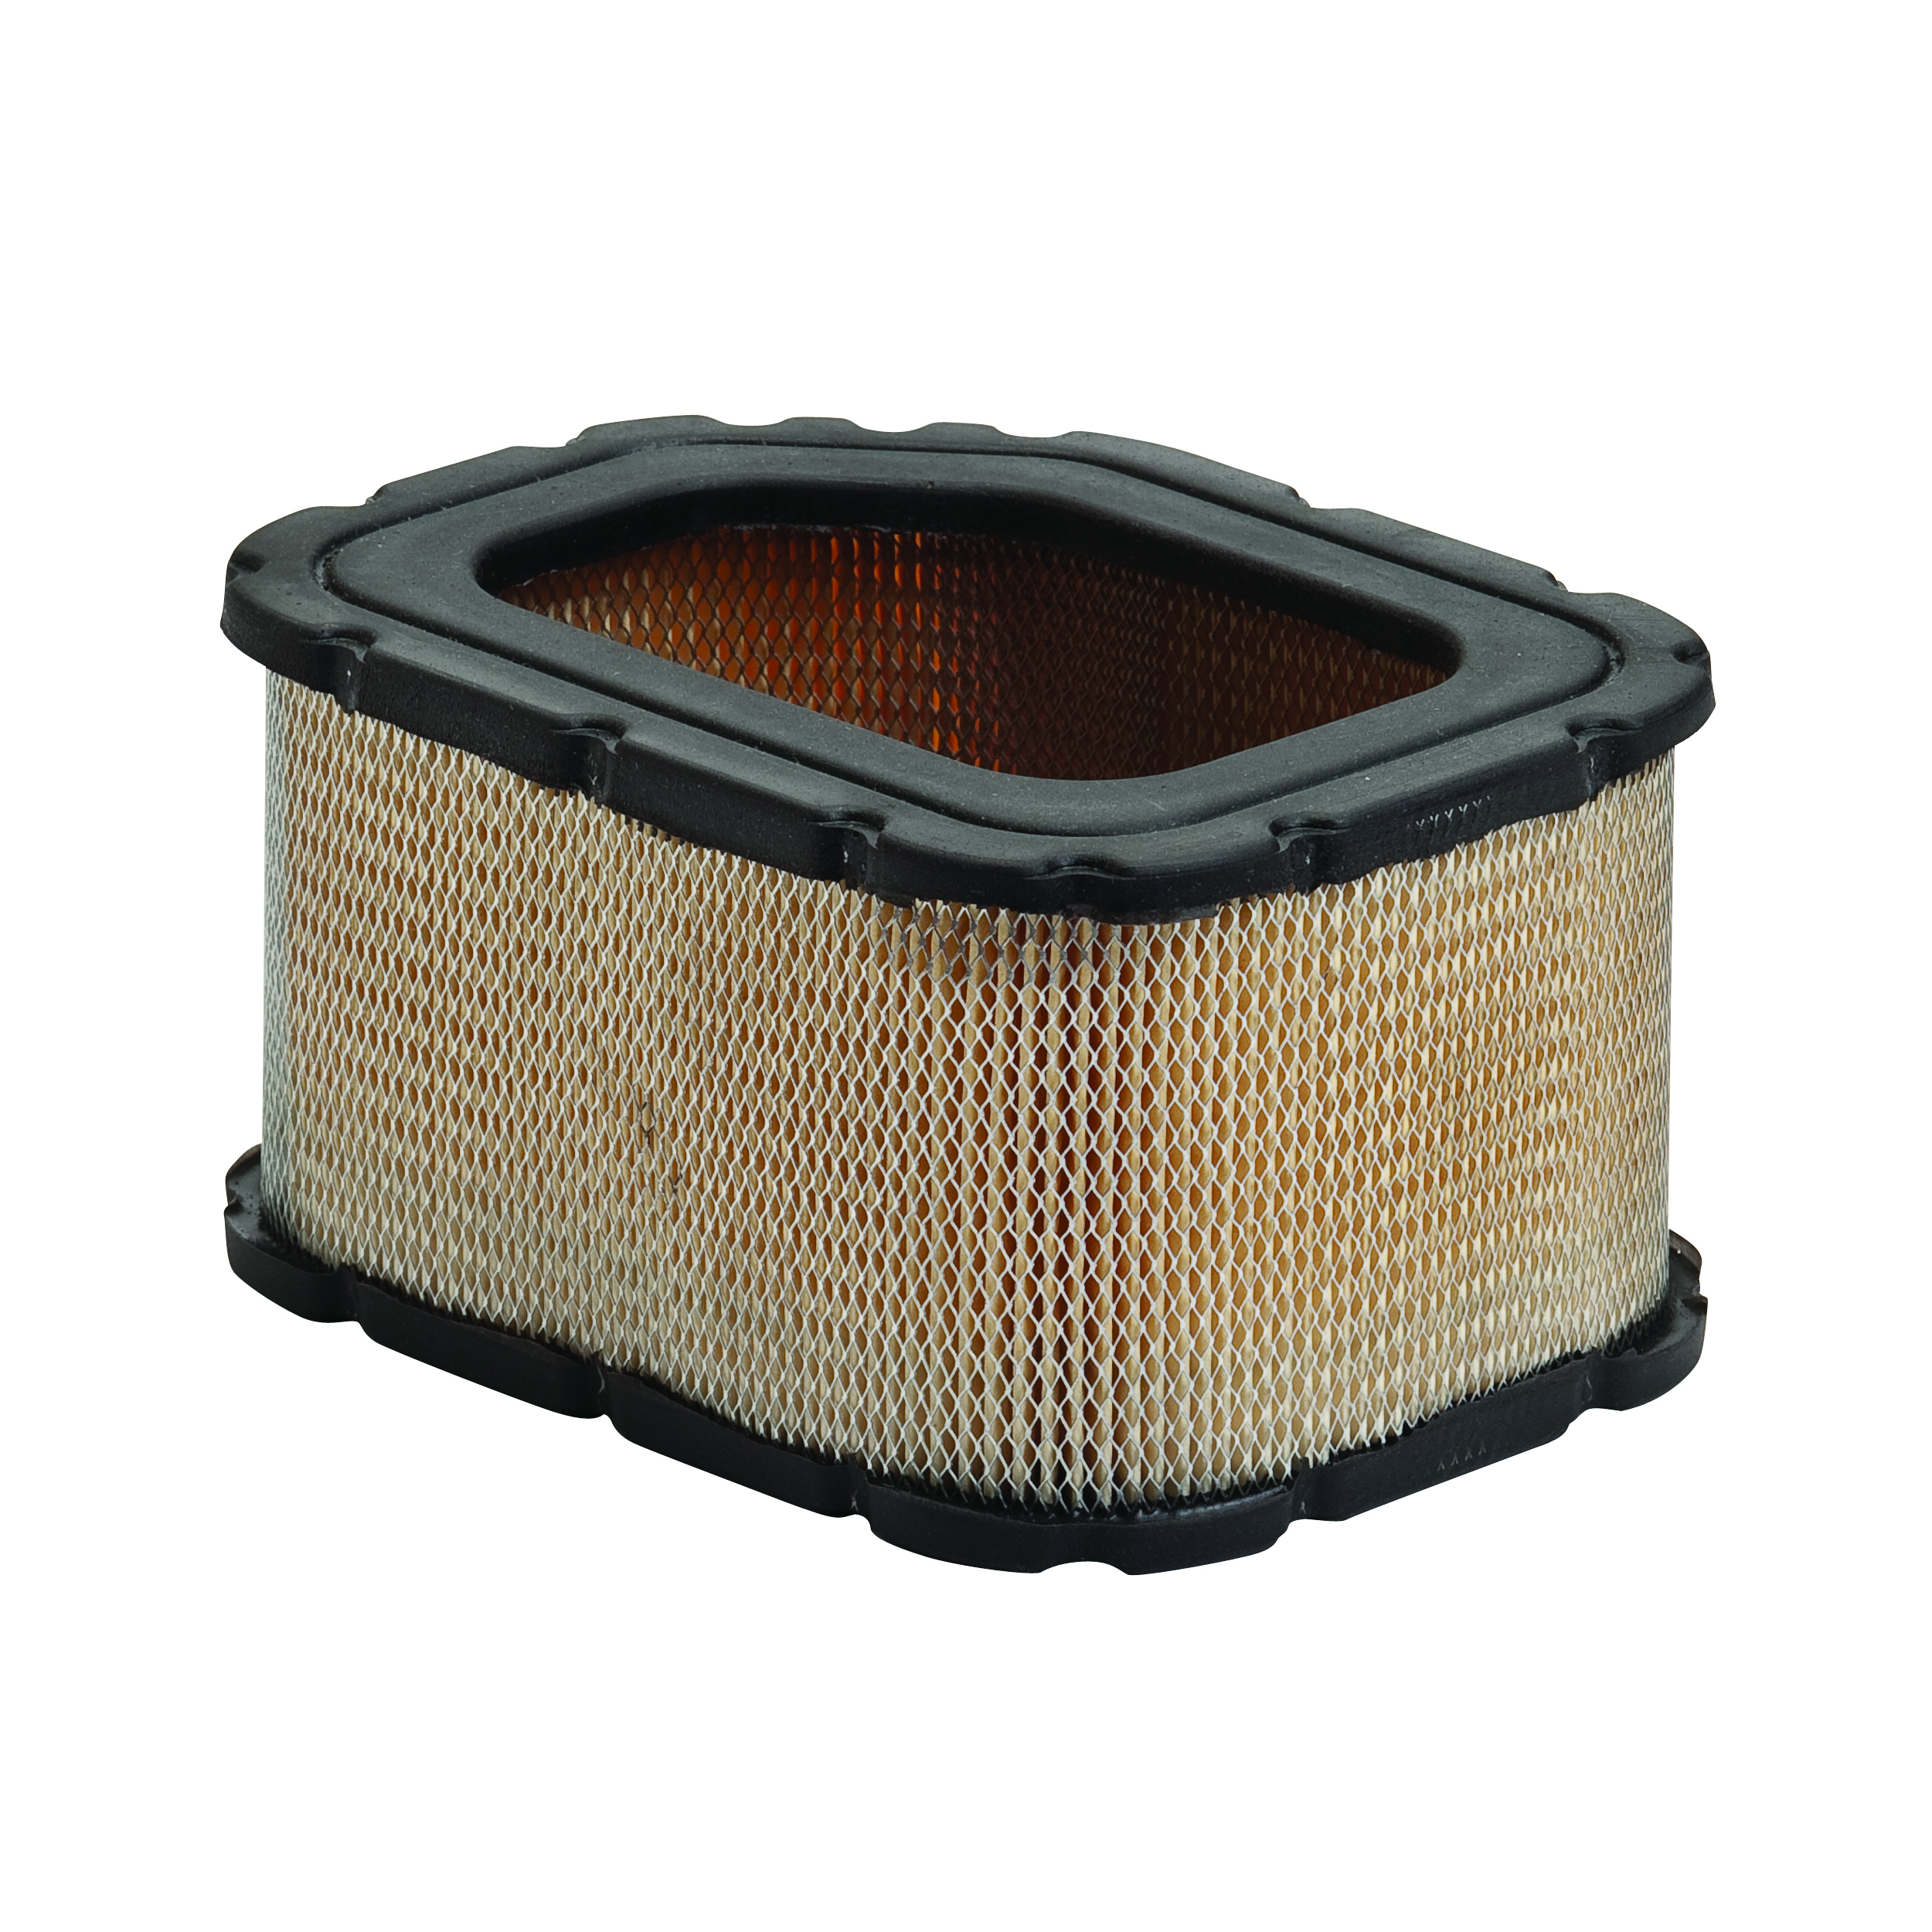 Paper Air Filter : Replacement air filter for kohler paper s